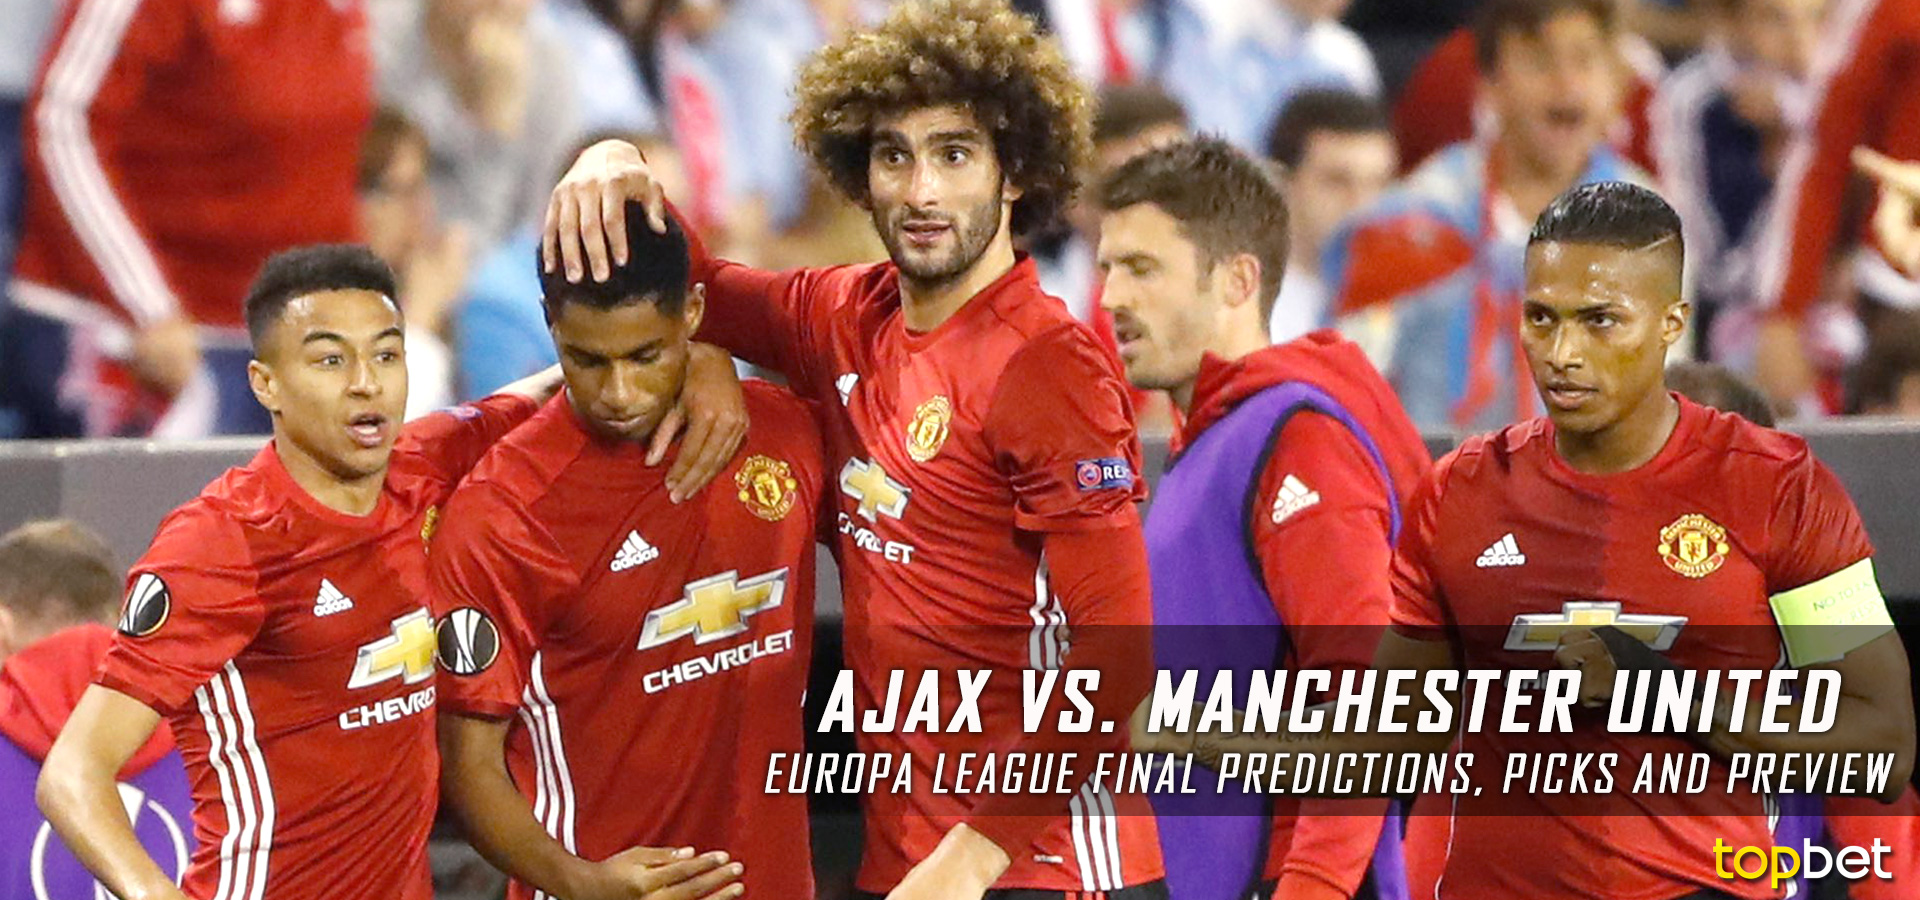 Ajax vs Manchester United Europa League Predictions & Preview